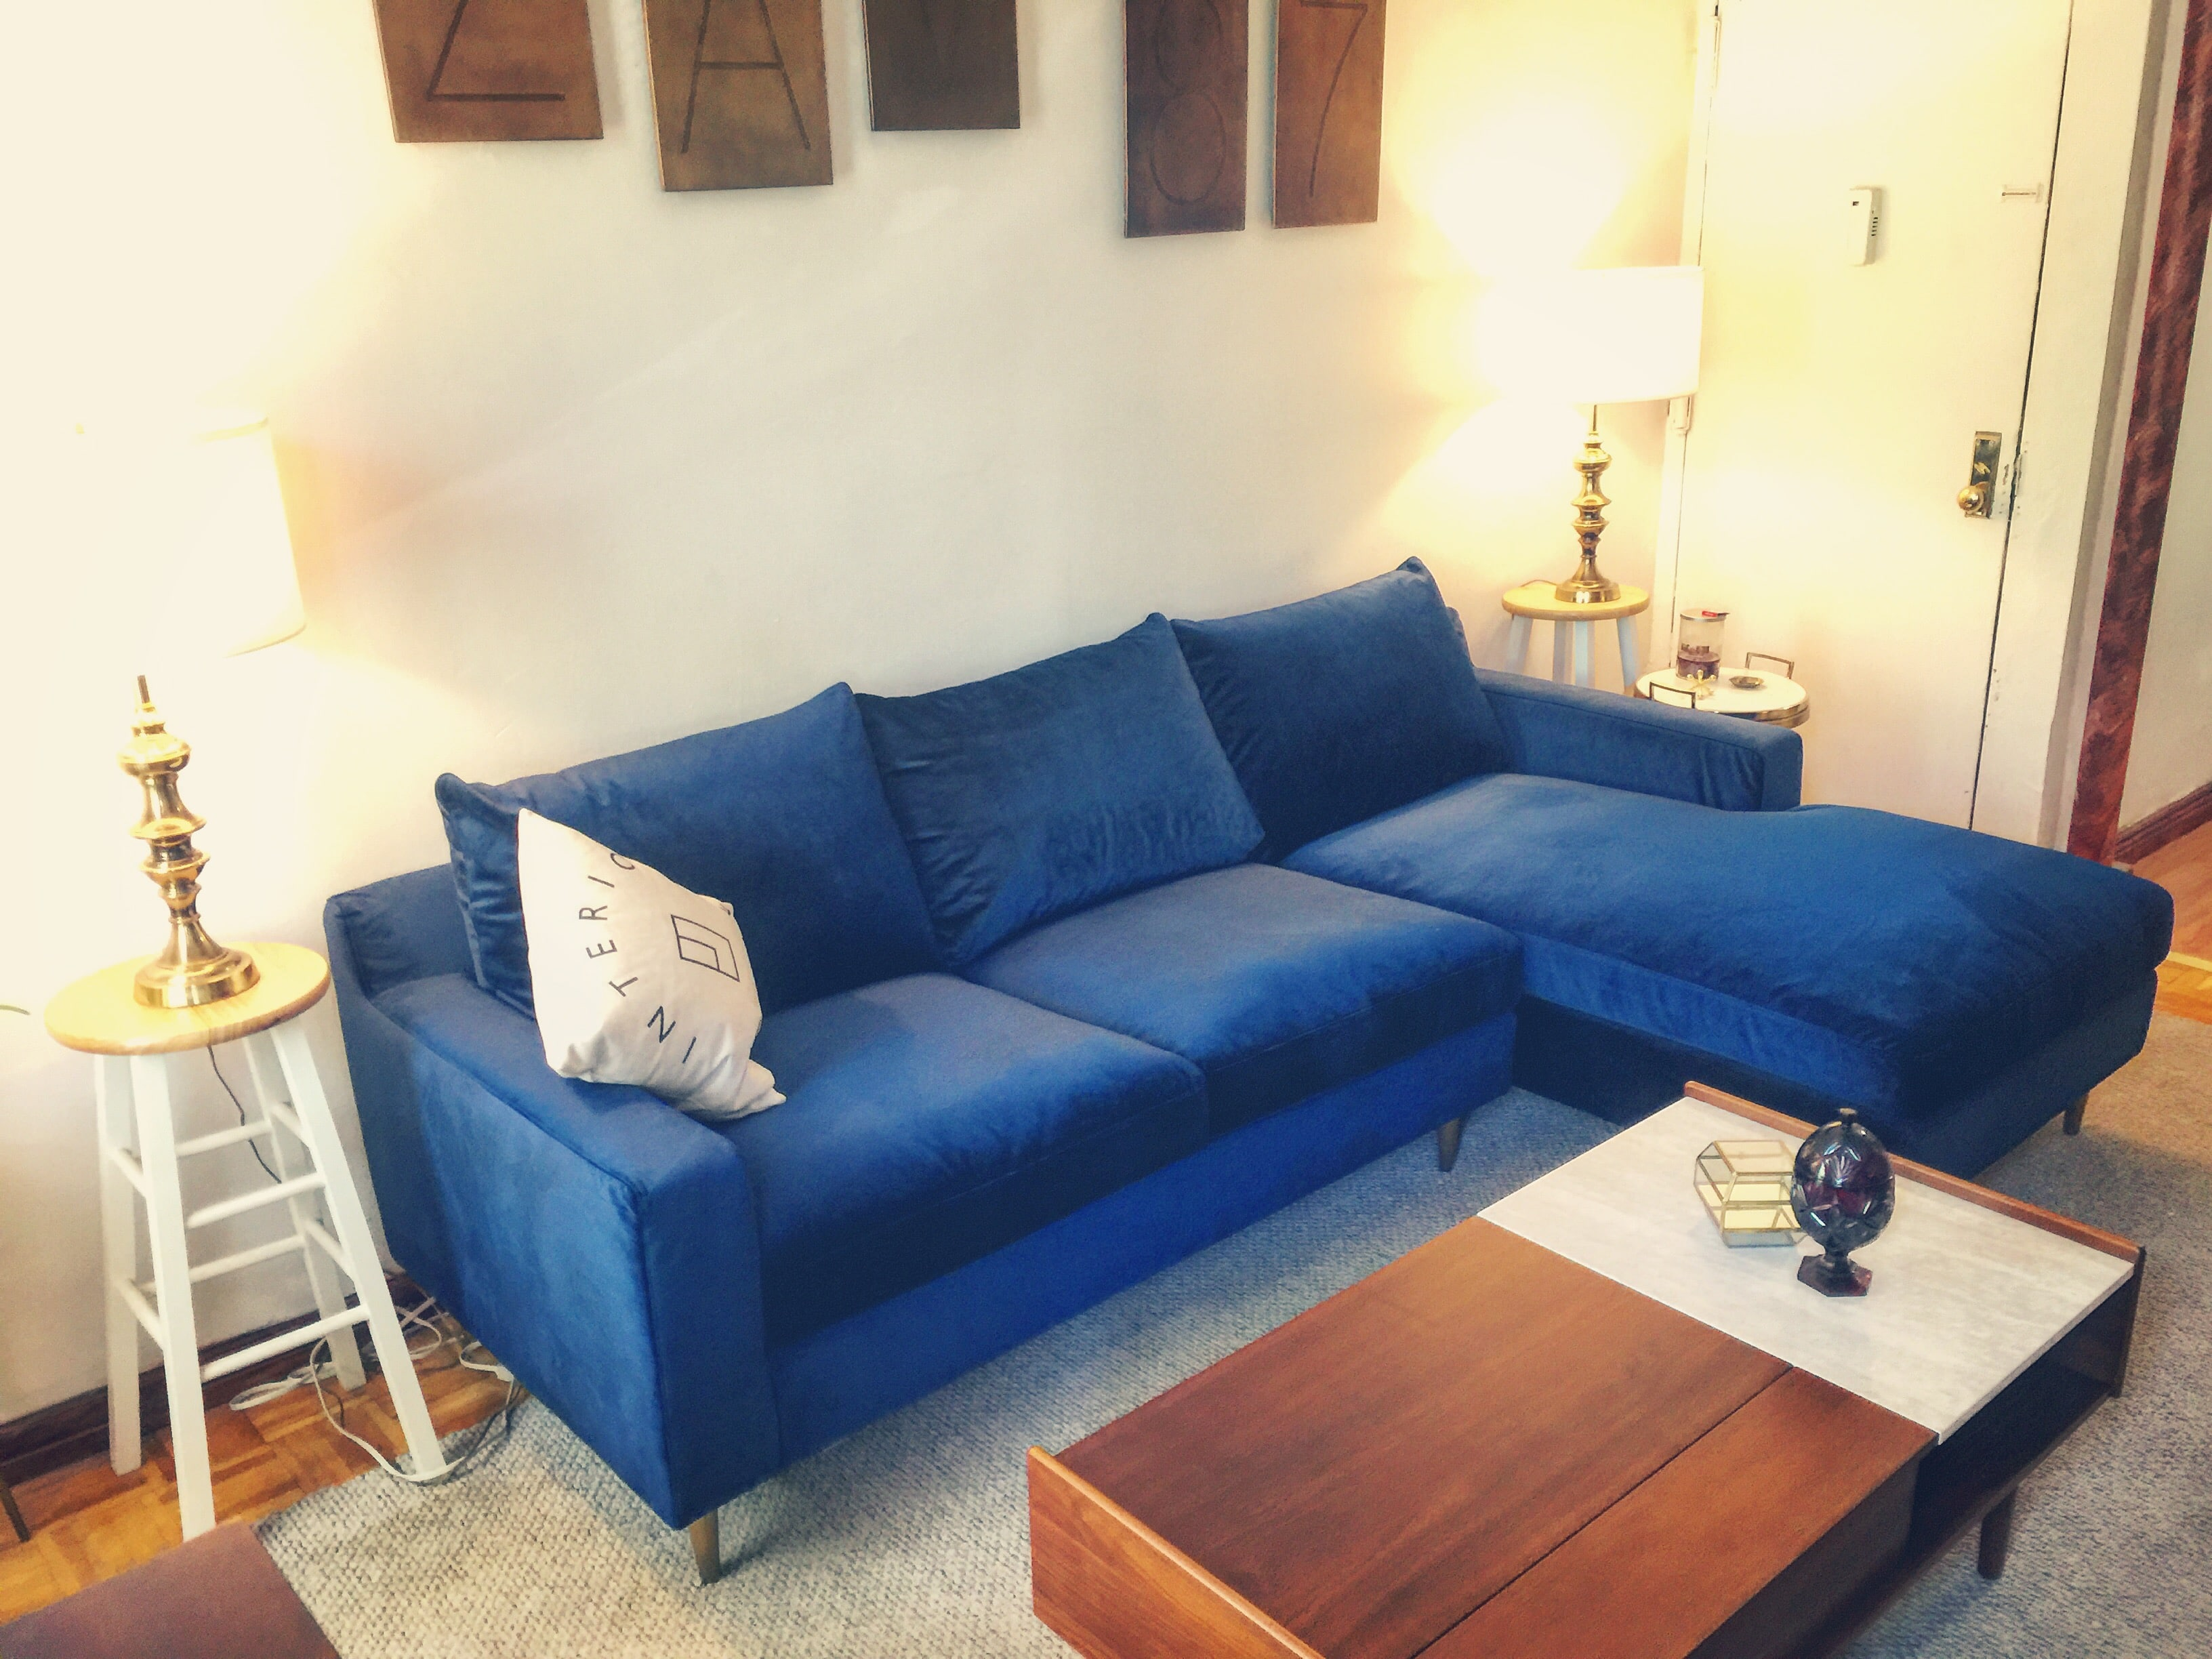 My new sofa has arrived from Interior Define | ZAMARTZ